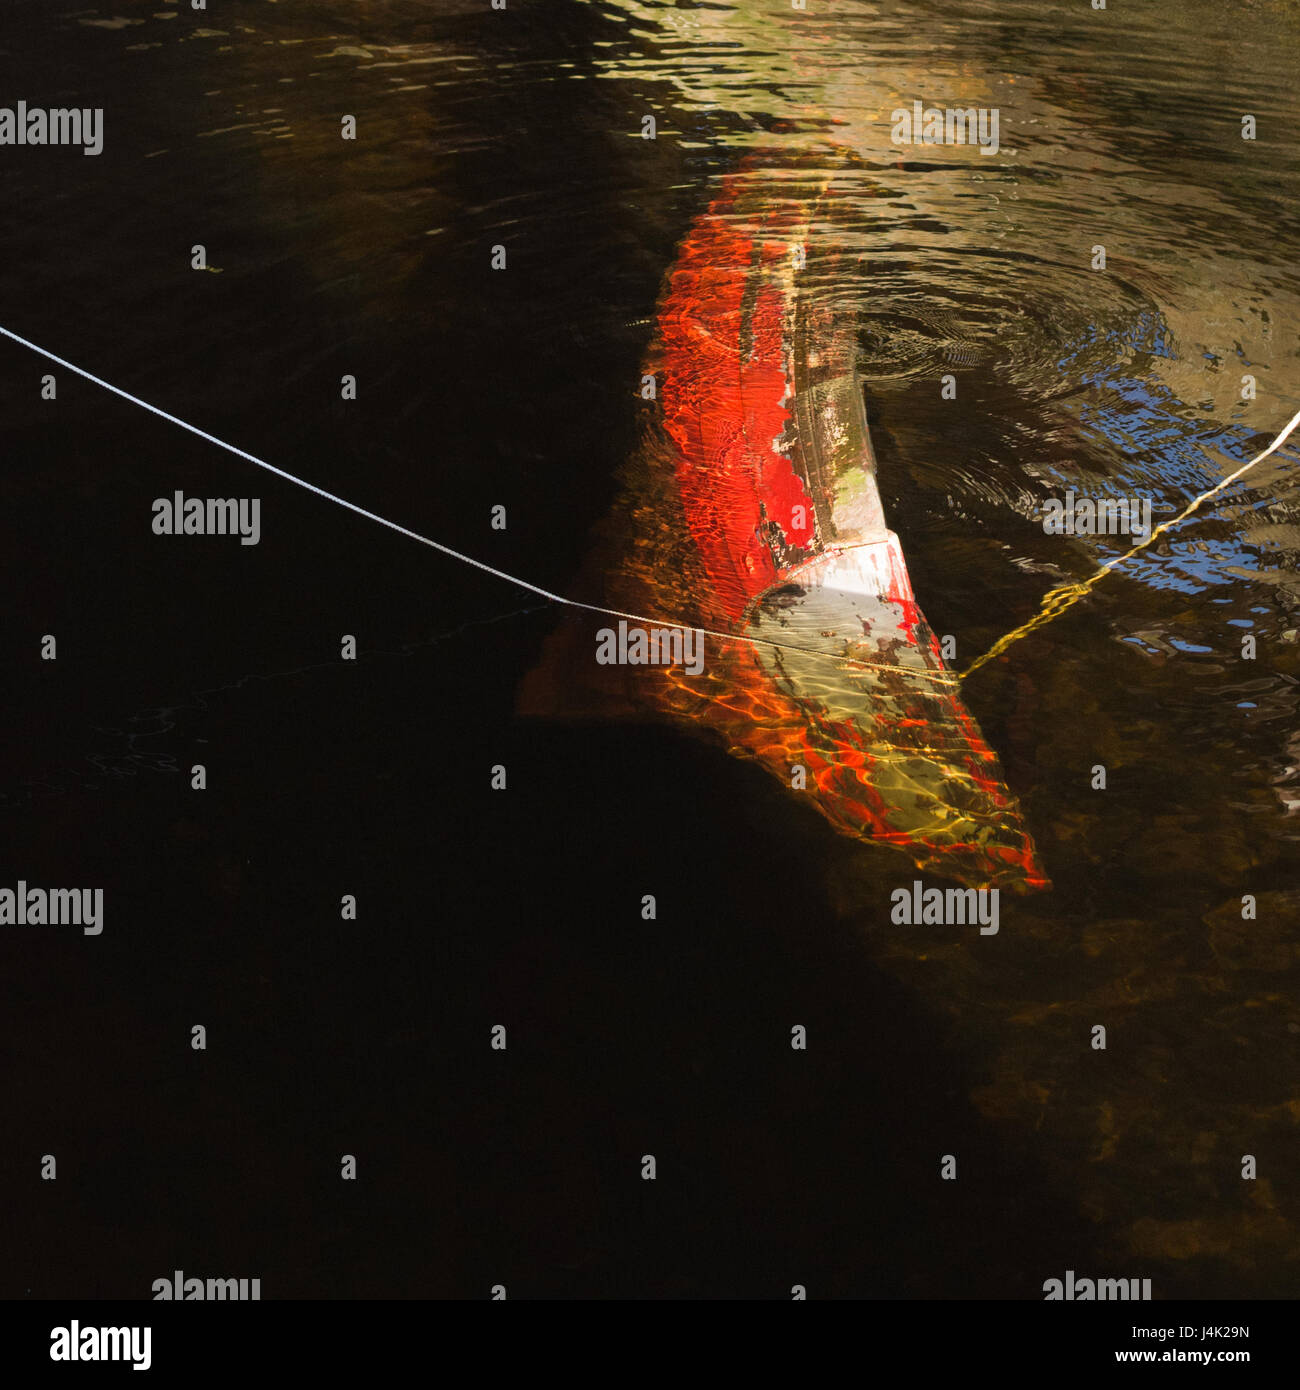 Boat sinking - old small red rowing boat sinking - Stock Image